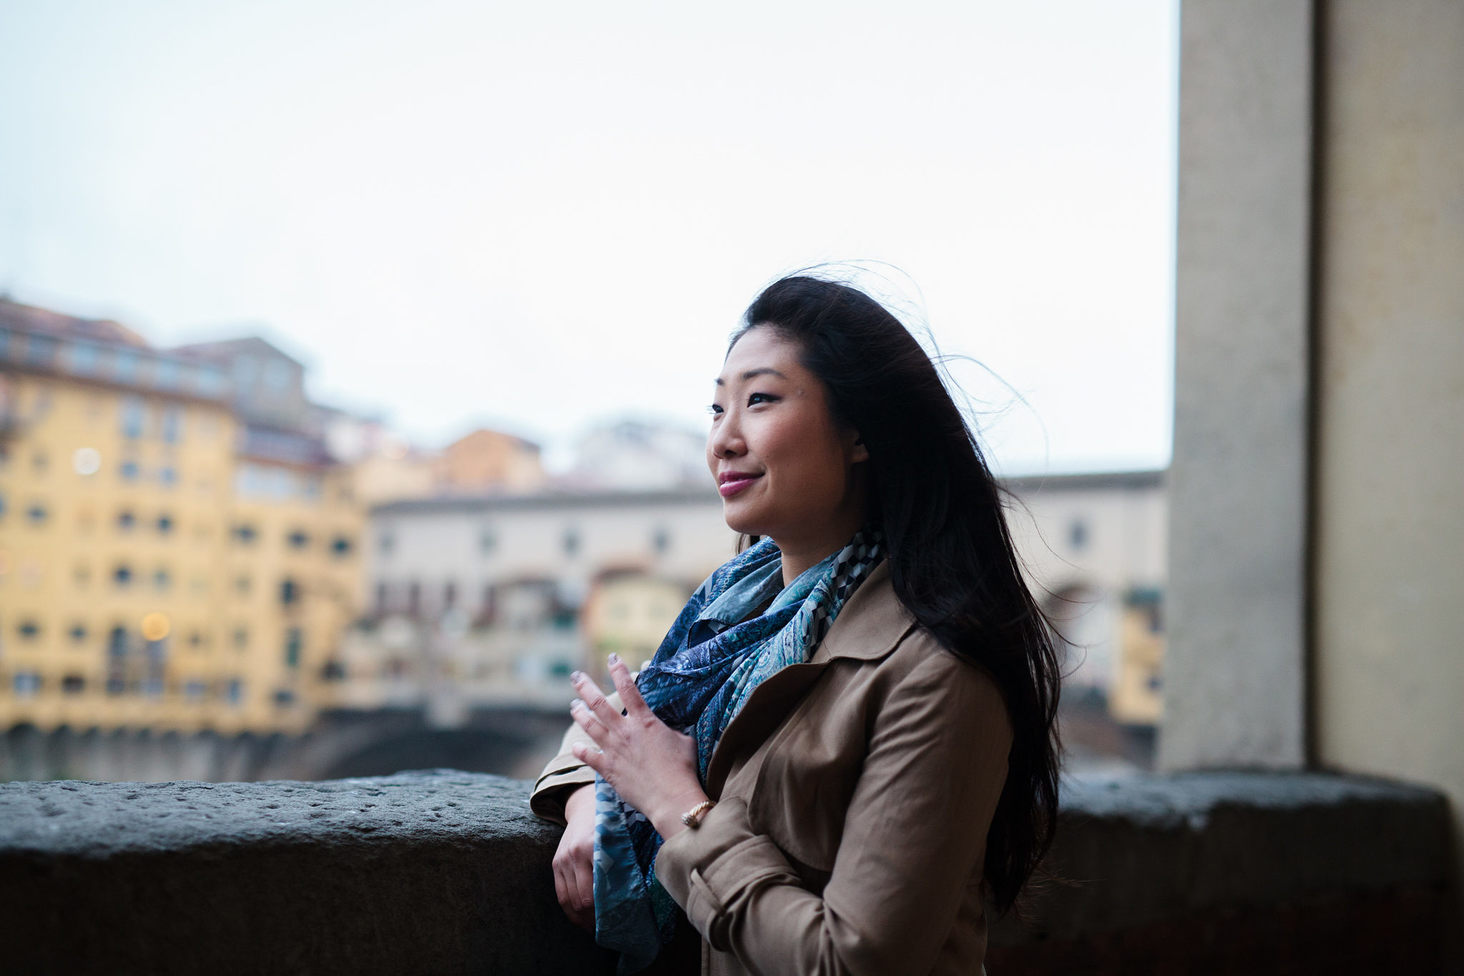 portrait-photography-florence-17